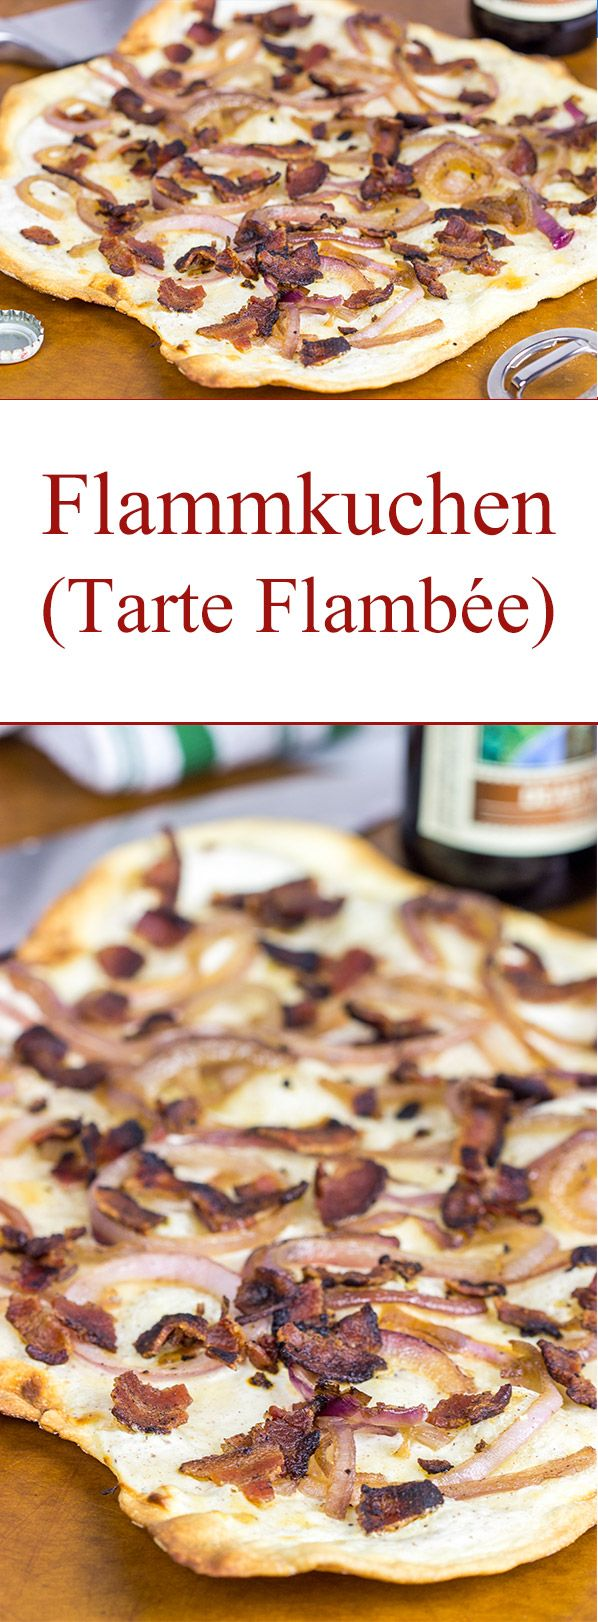 "Flammkuchen, or tarte flambée in French, is a German-style thin-crust ""pizza"" topped with bacon and onions...and it's delicious!"